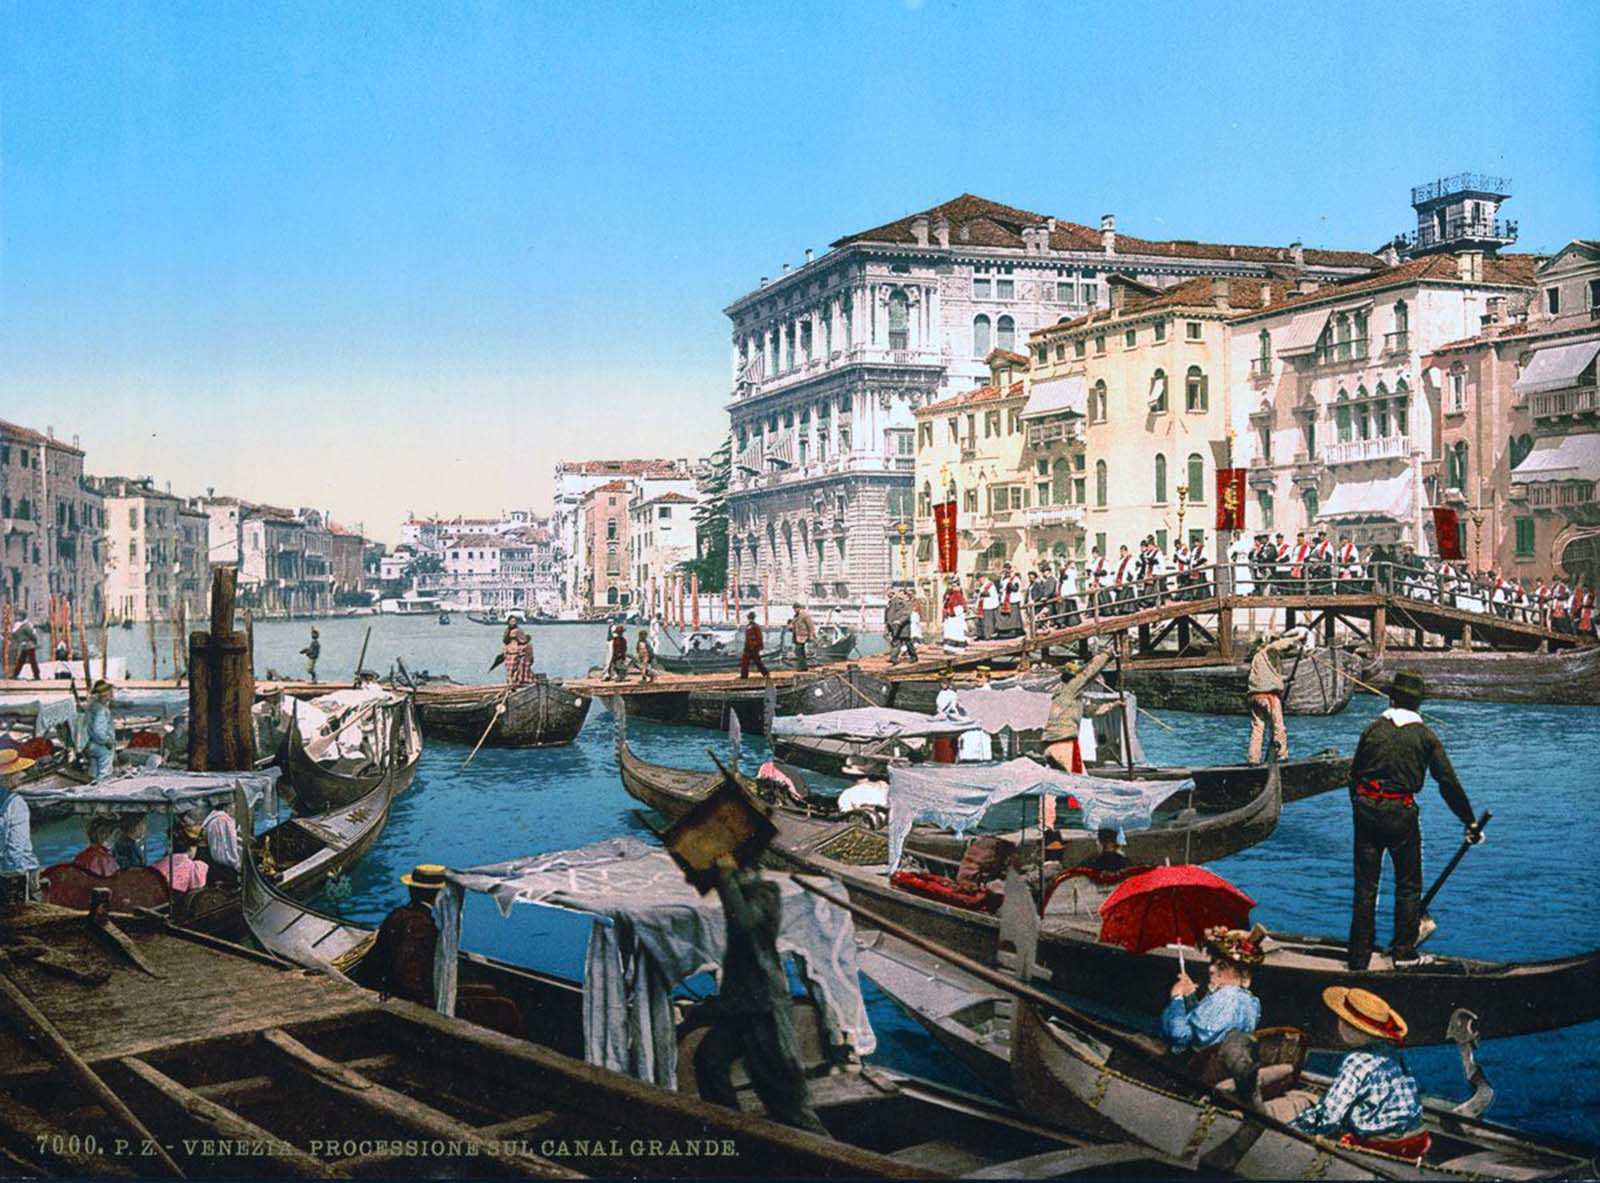 A procession over the Grand Canal.